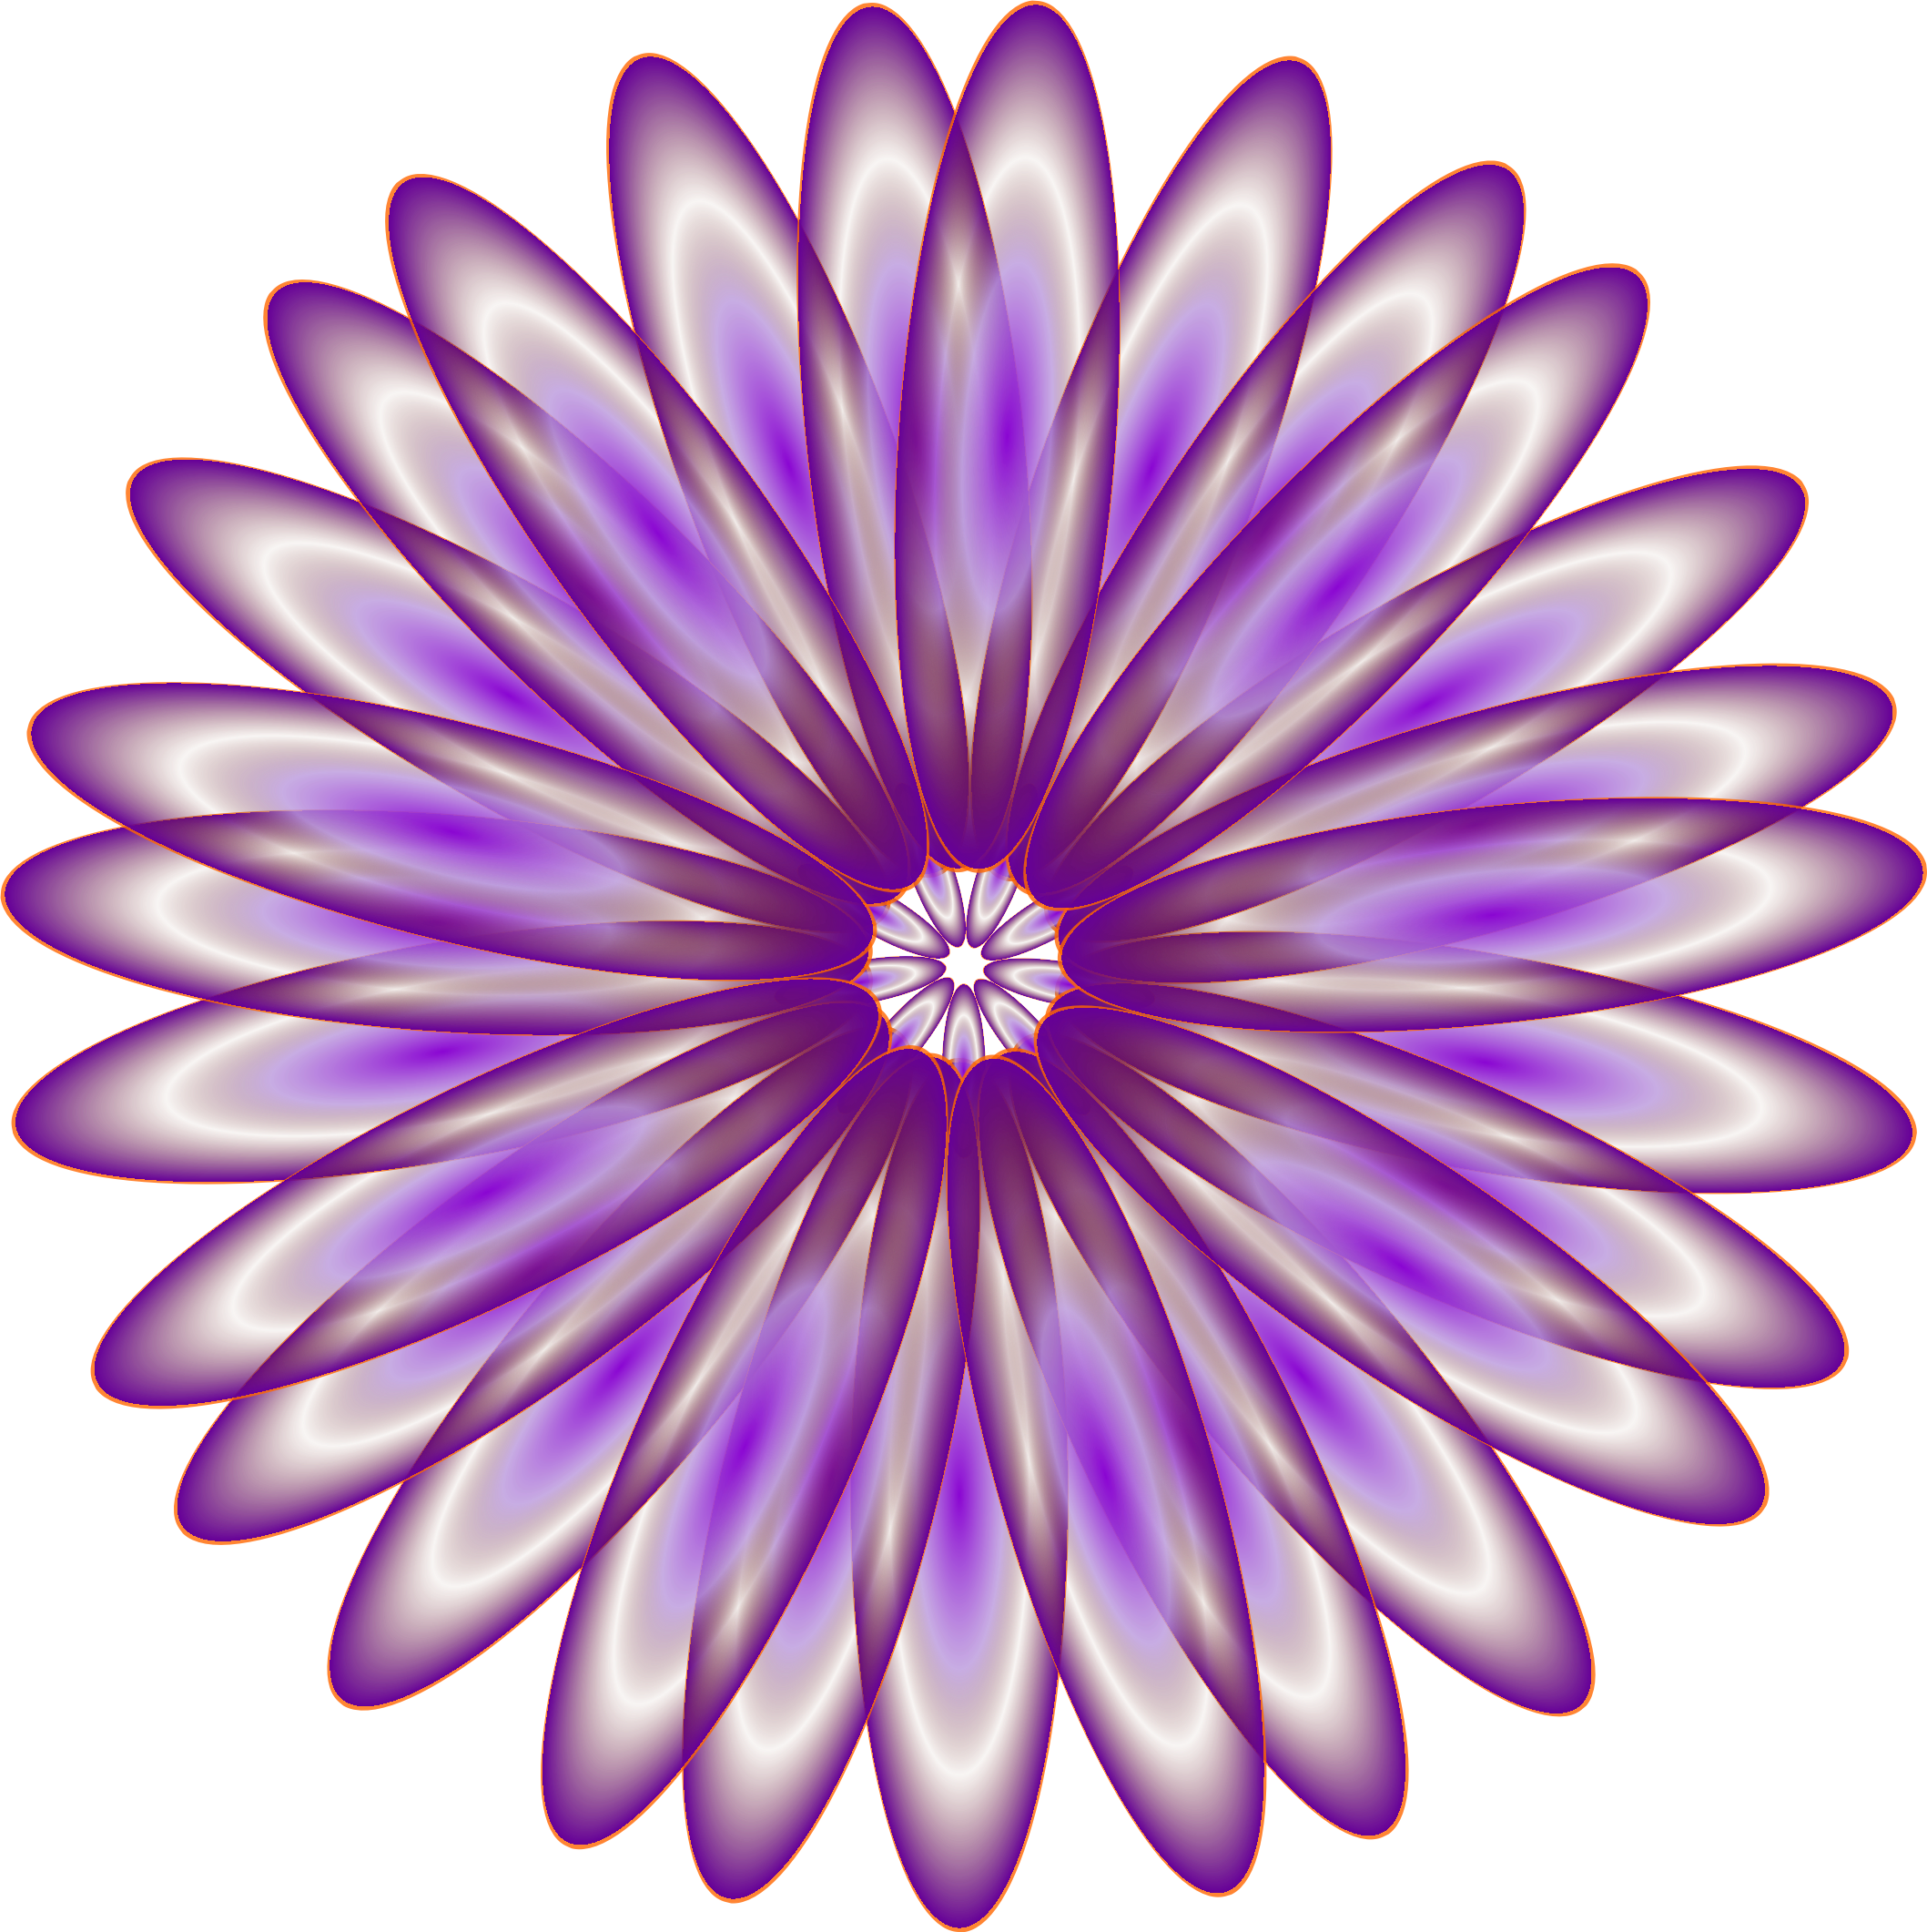 Purple Daisy by genolve